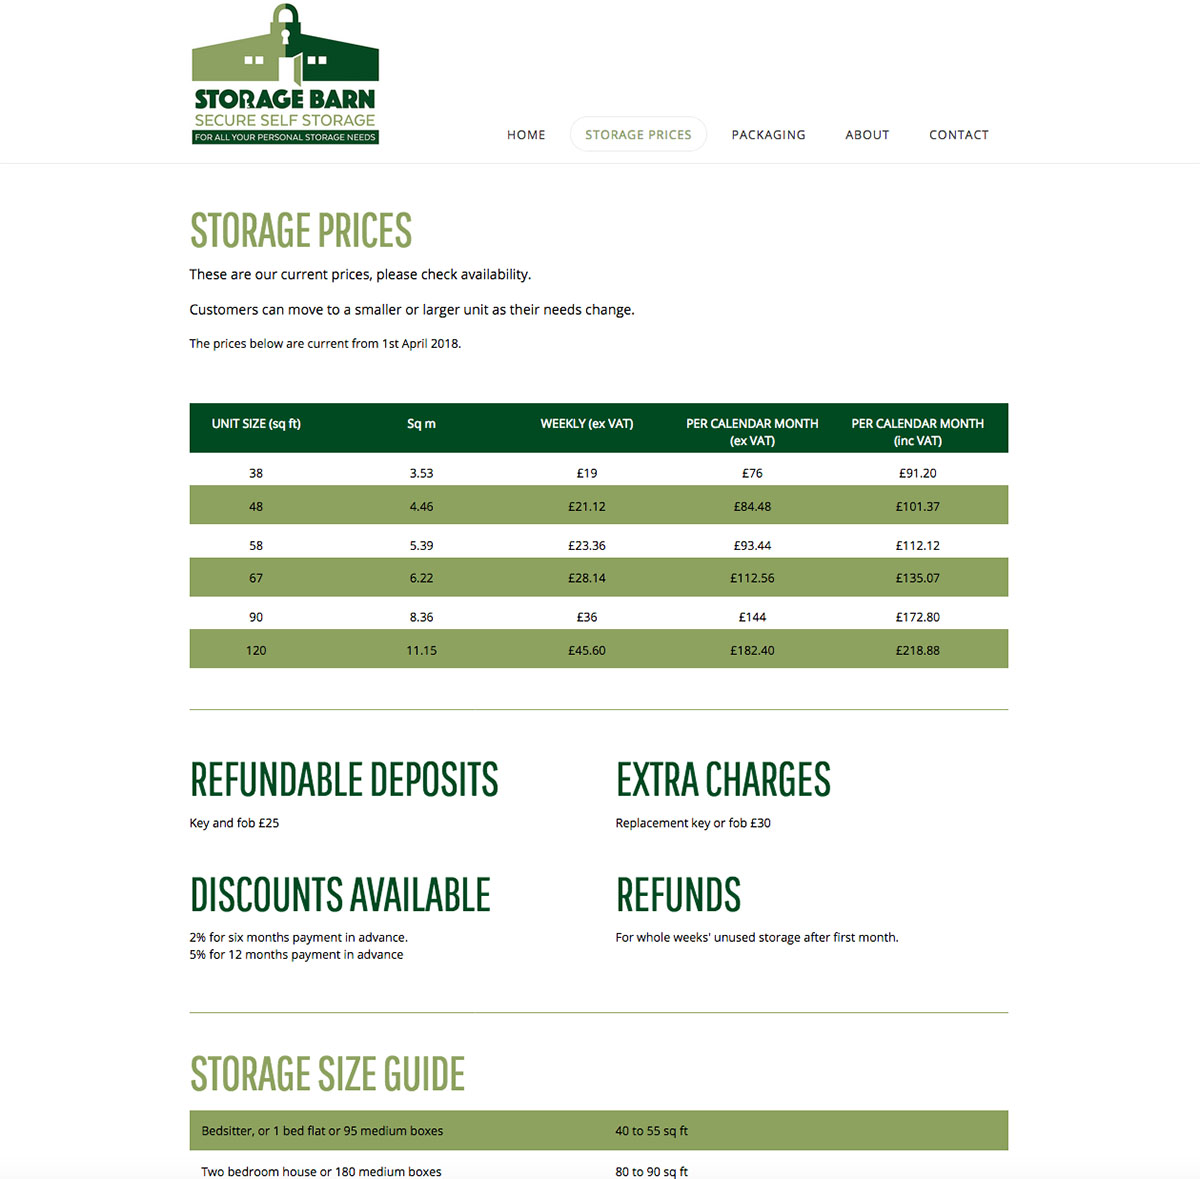 Storage Barn Website Prices